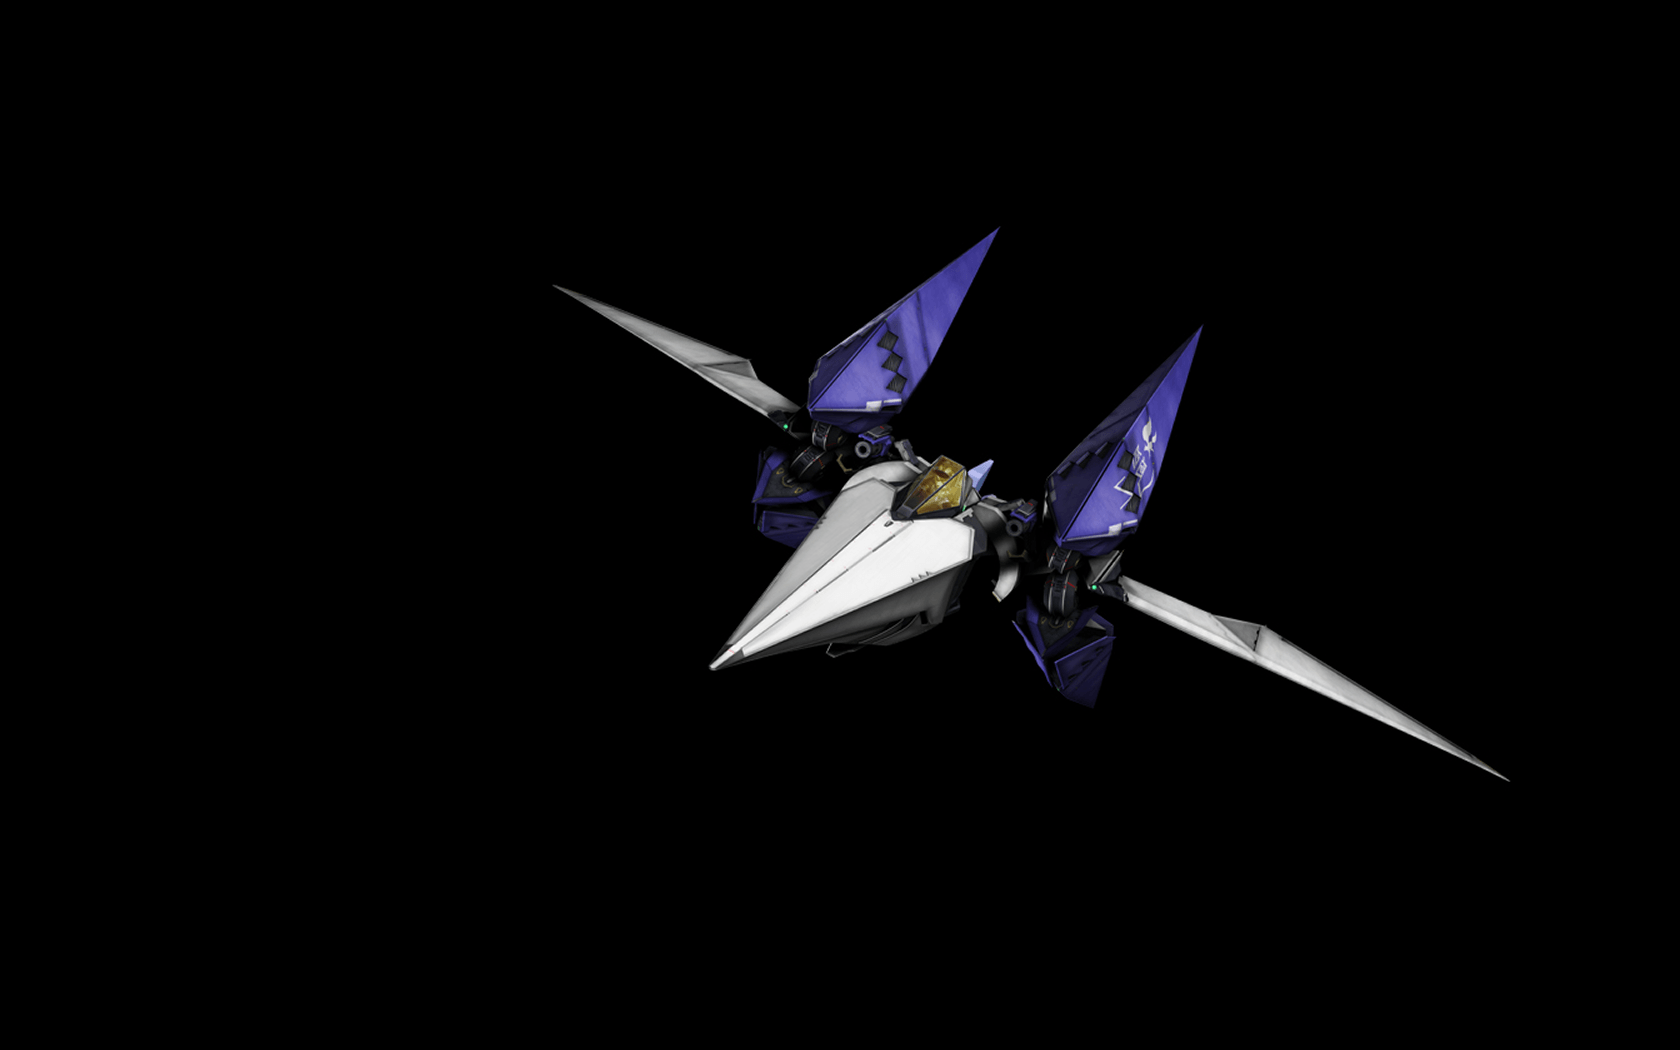 Starfox Wallpaper